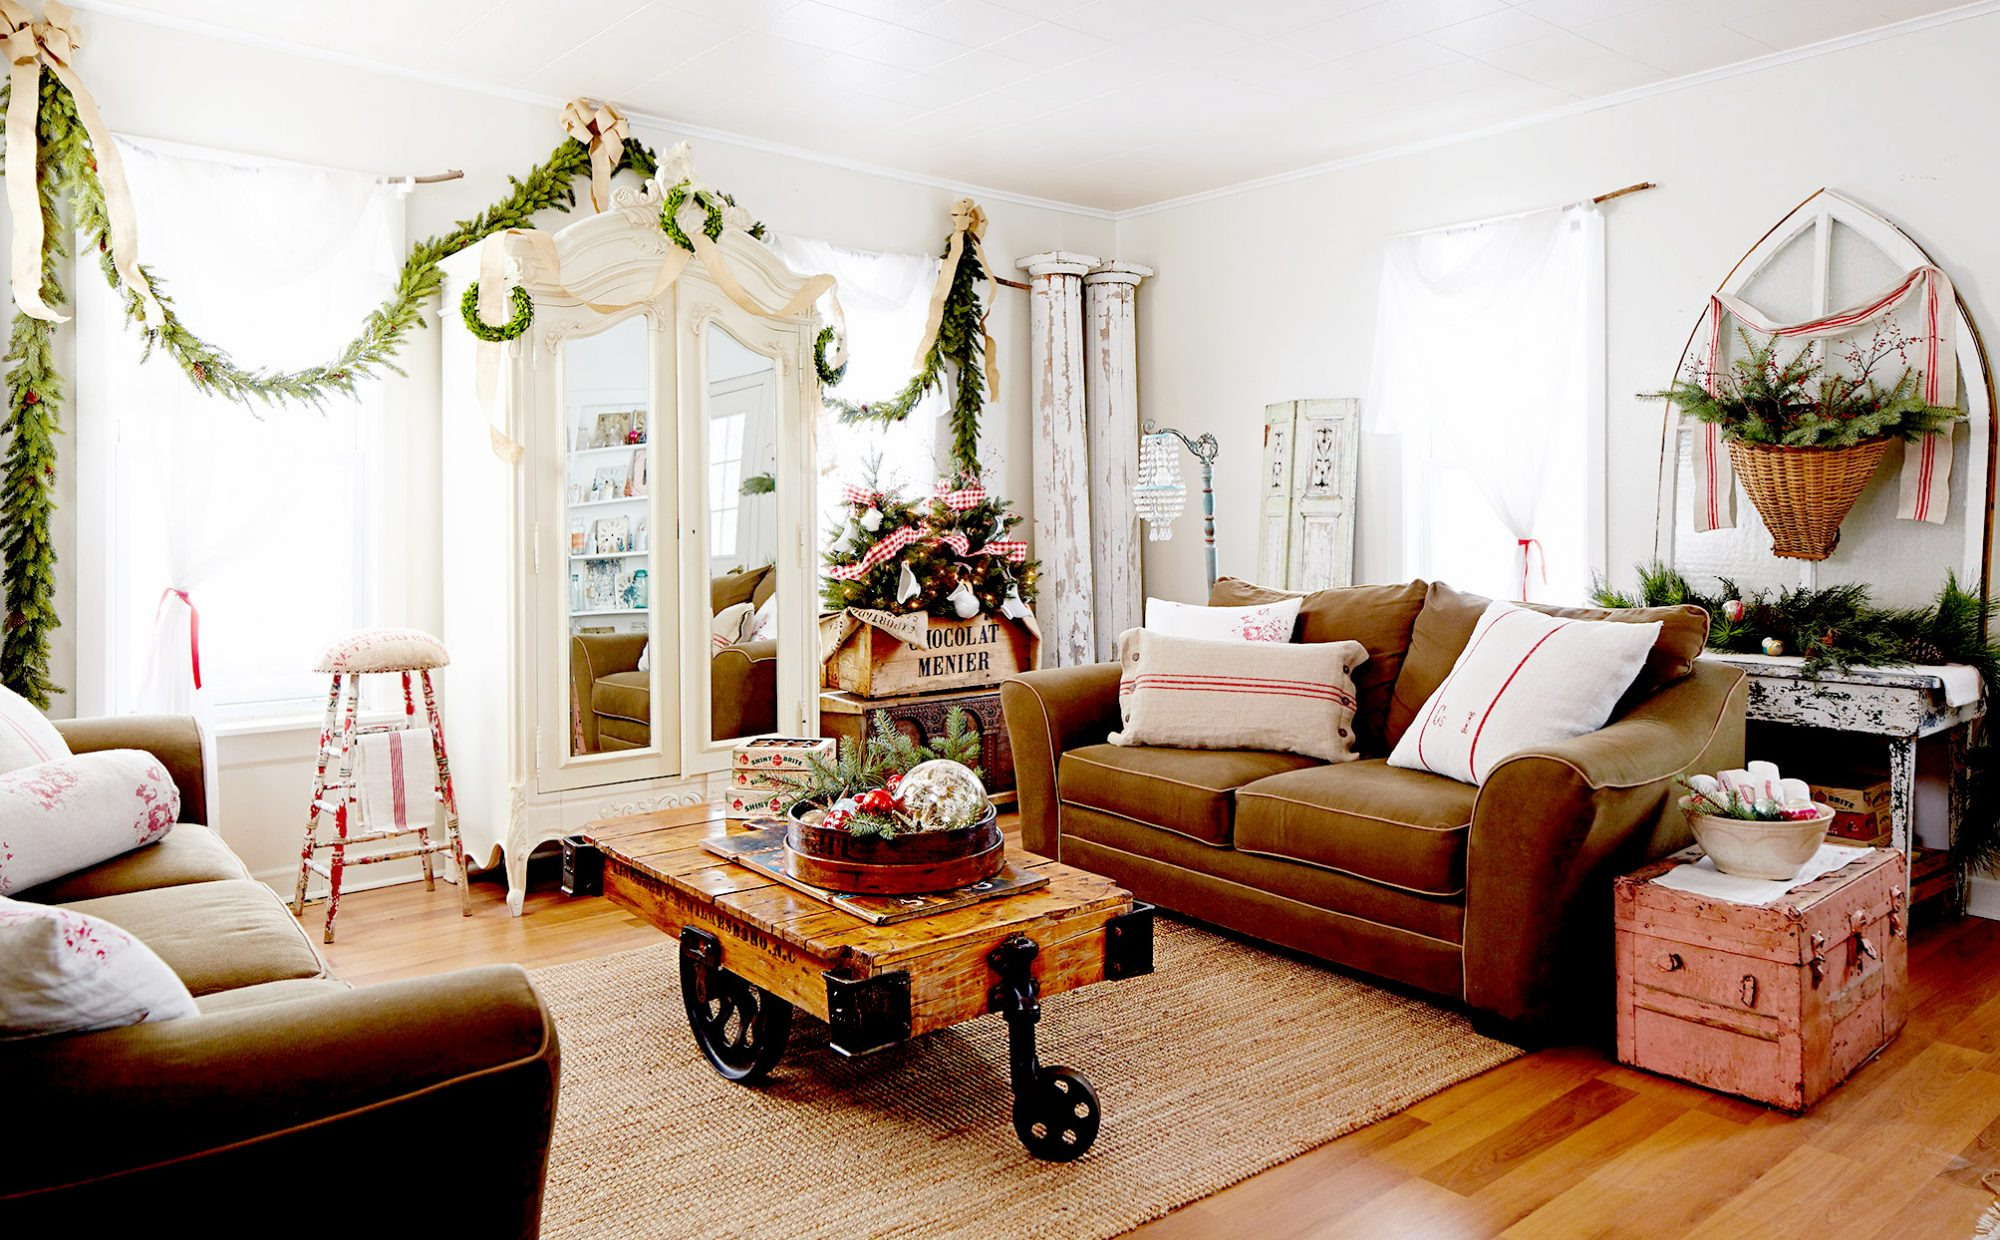 Living room with two couches and garland